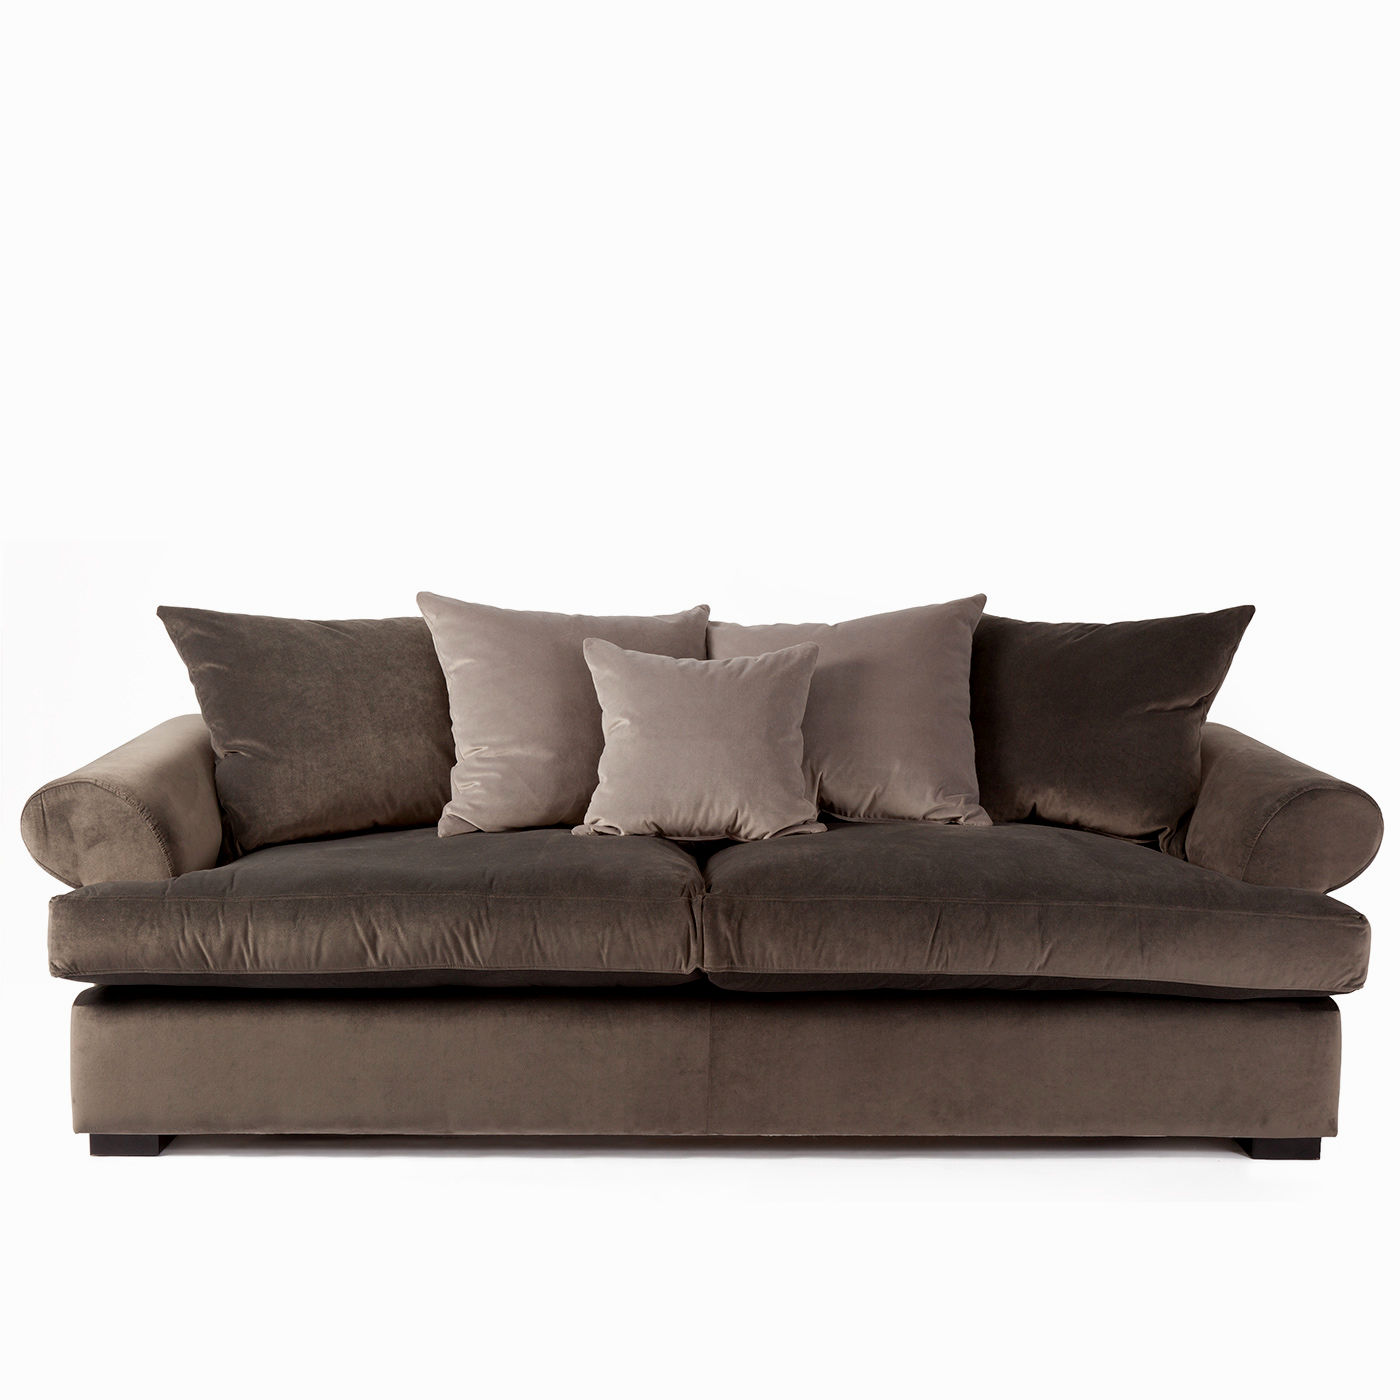 finest brown leather sofa pattern-Fantastic Brown Leather sofa Decoration